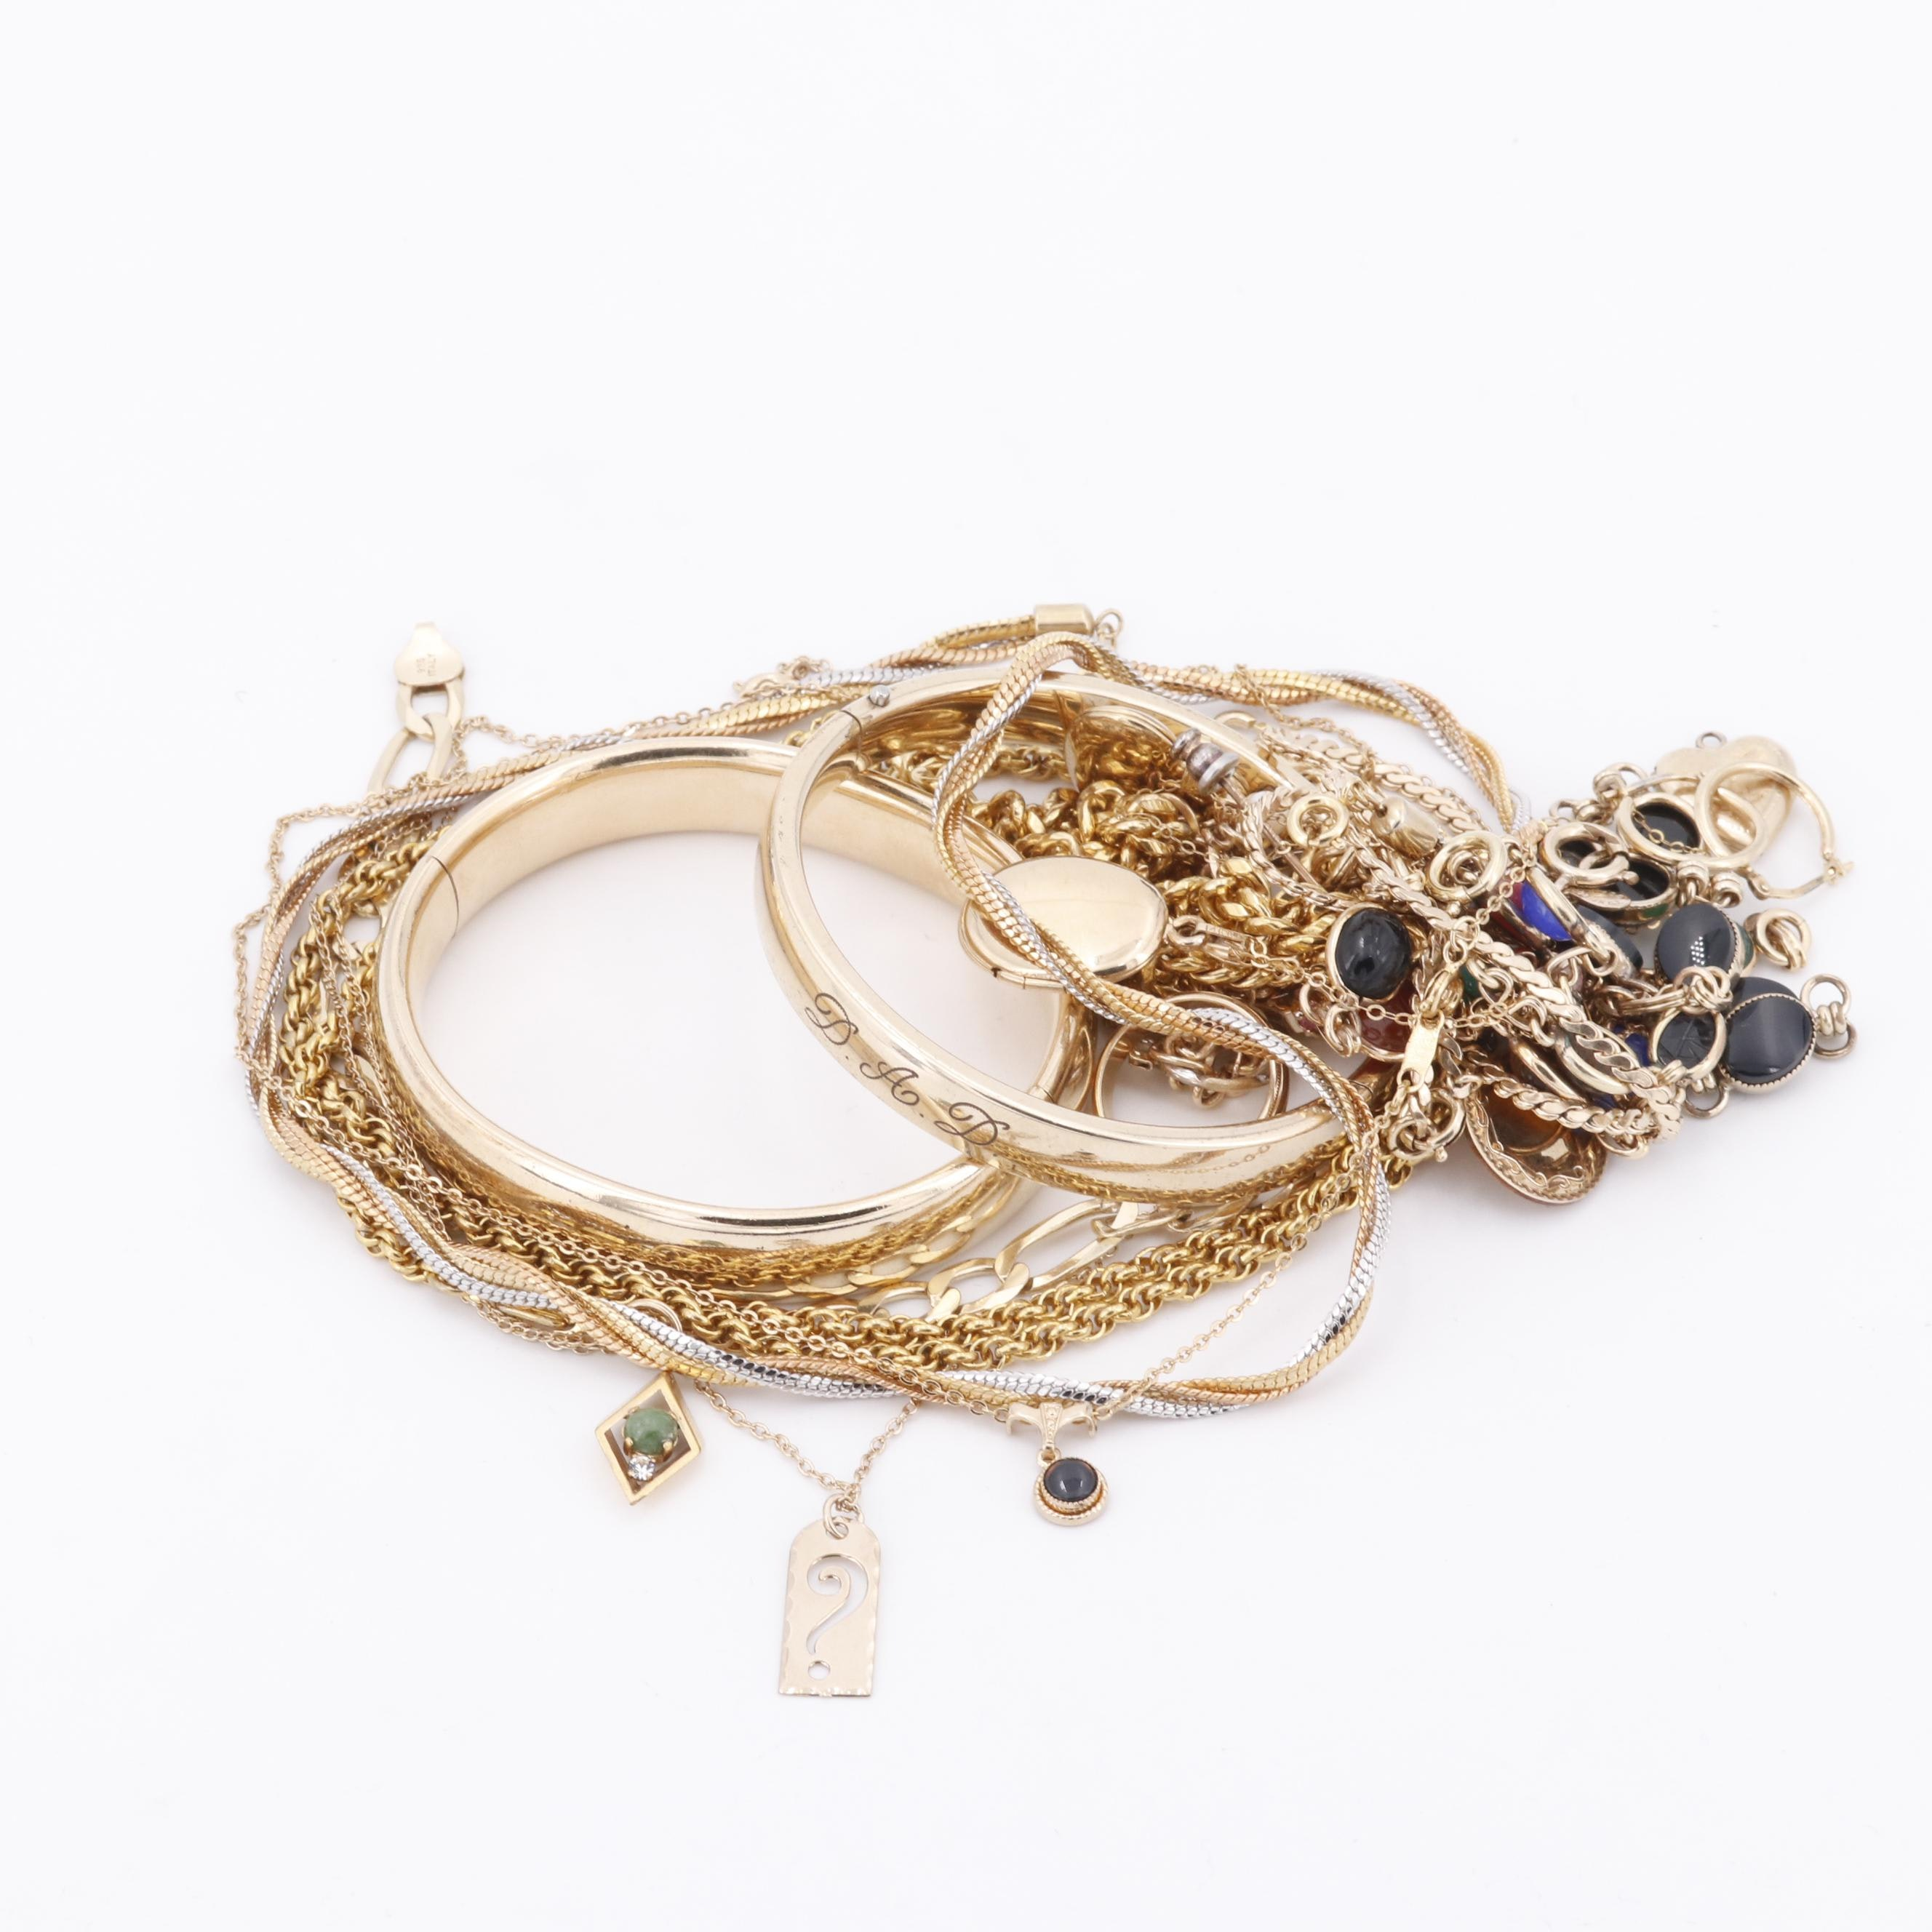 Vintage Gold Filled and Fashion Jewelry